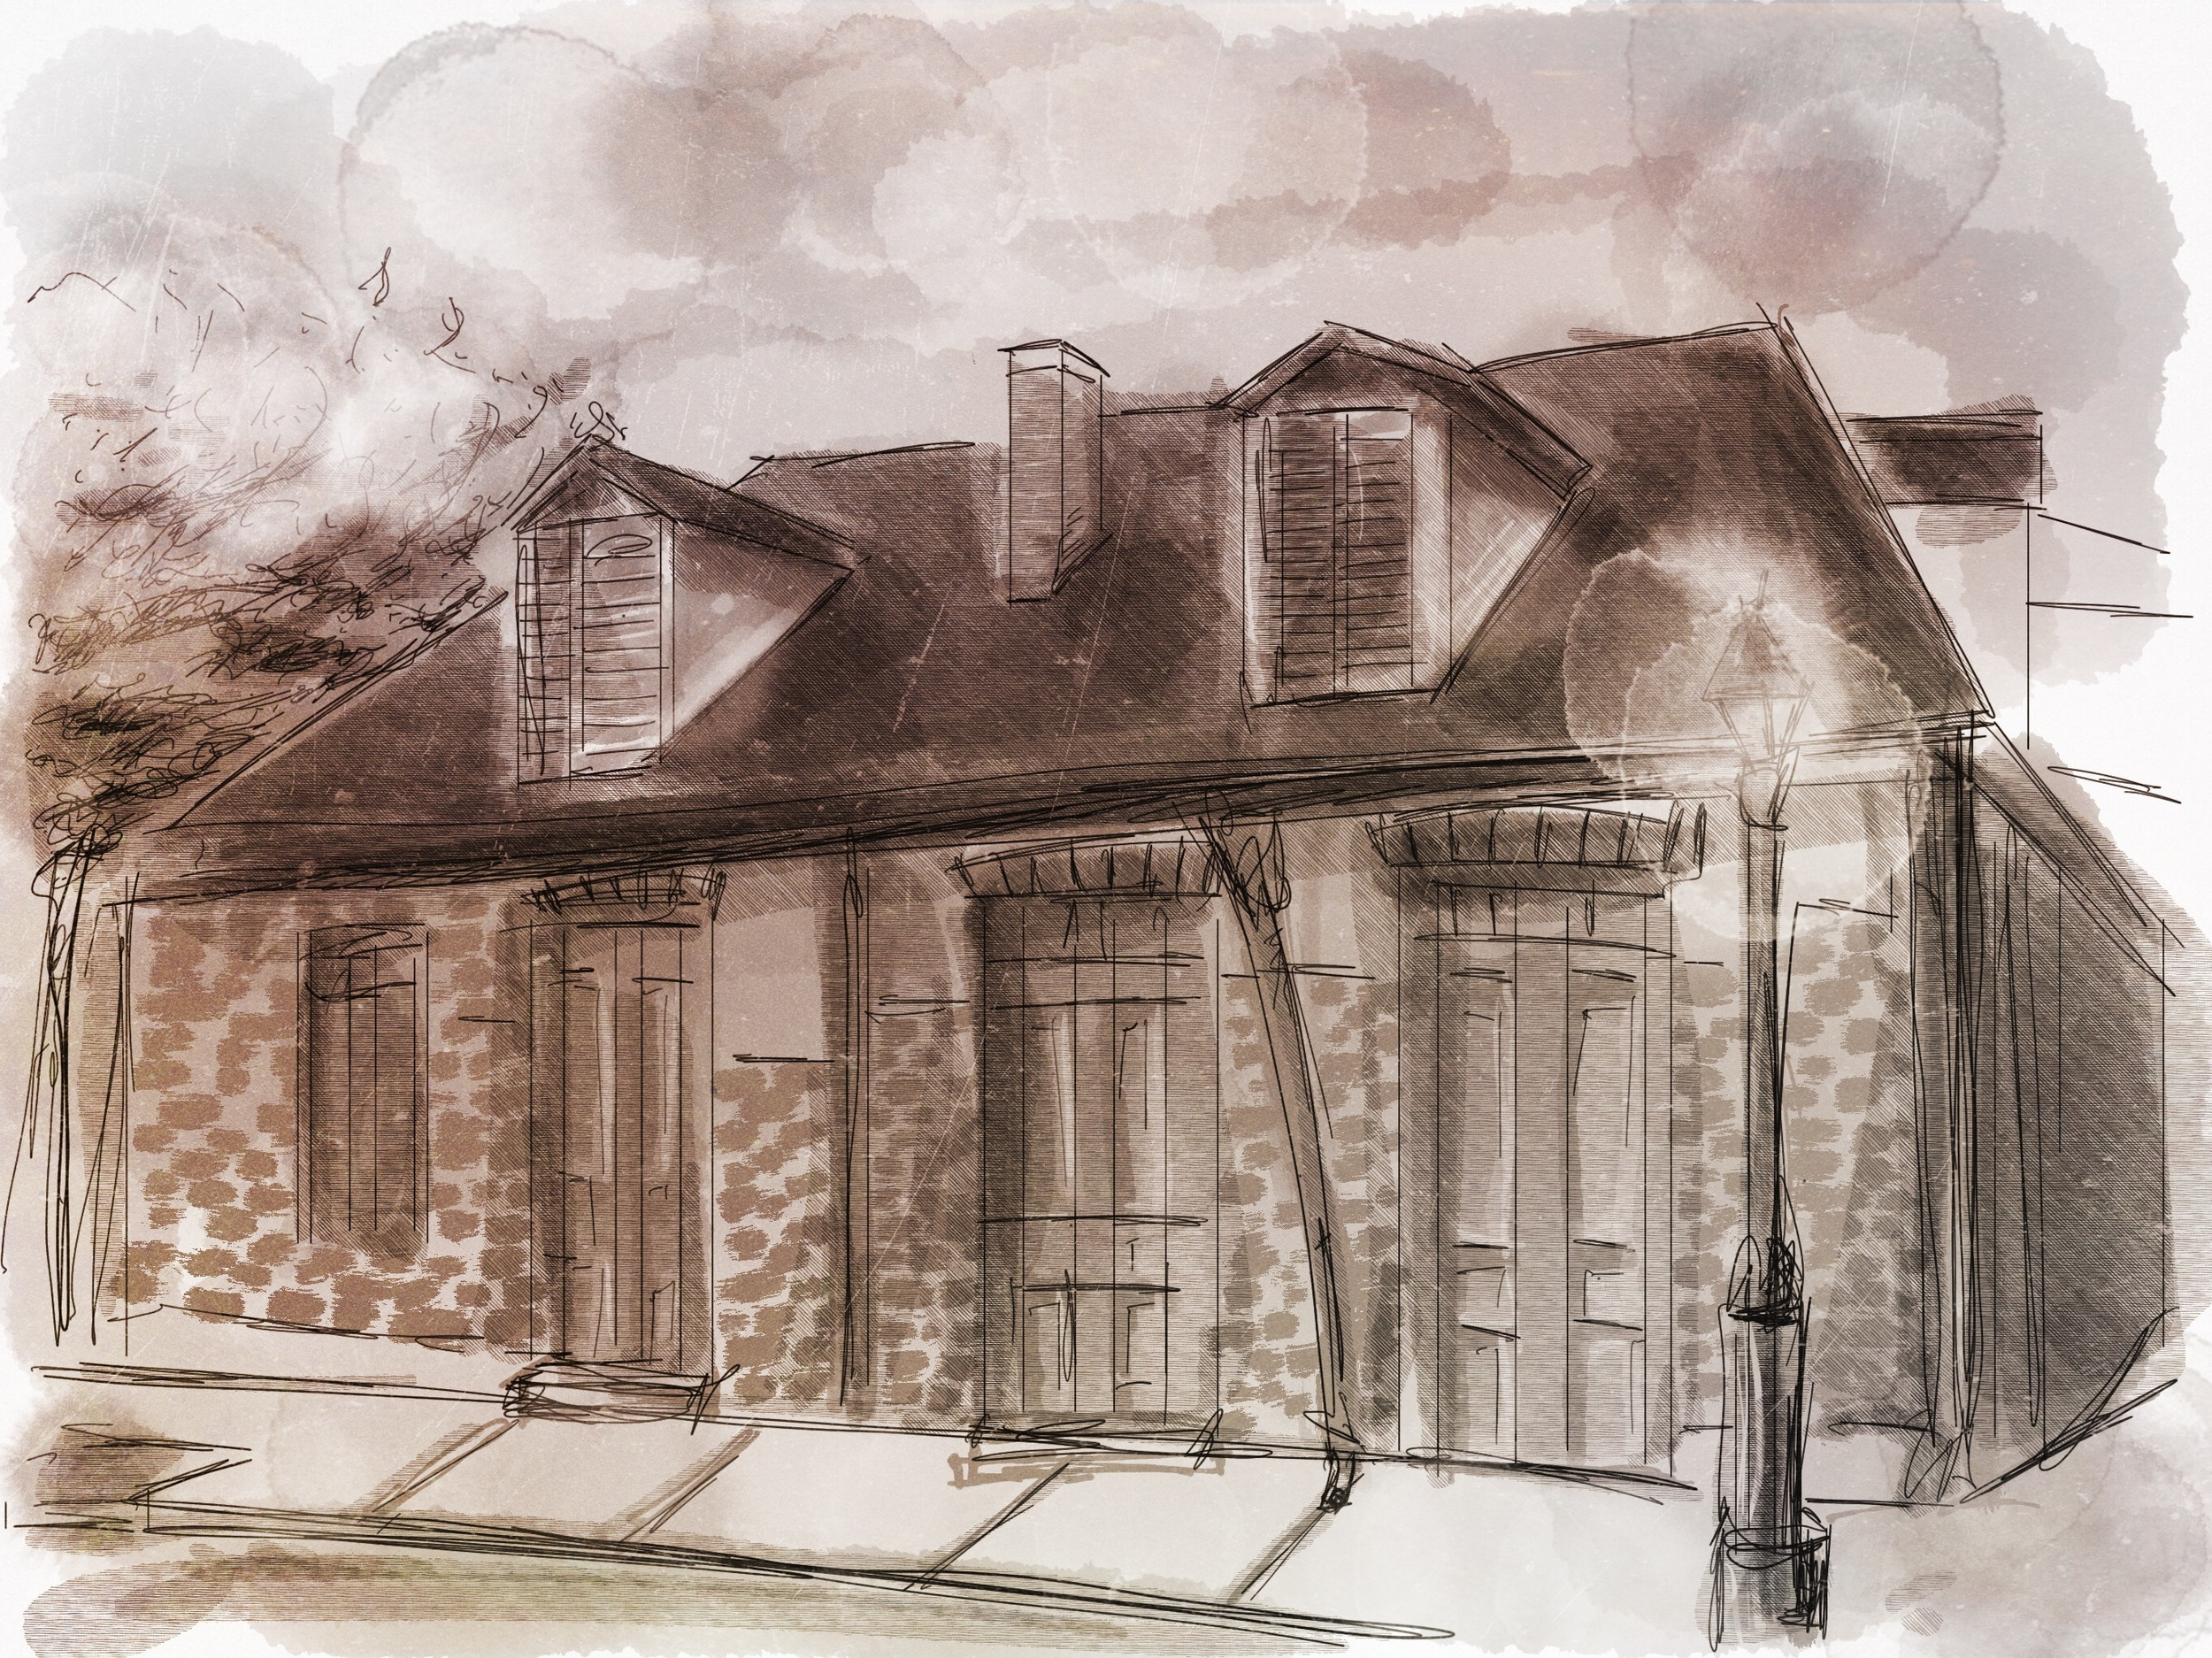 Lafitte's Blacksmith Shop built in 17something?